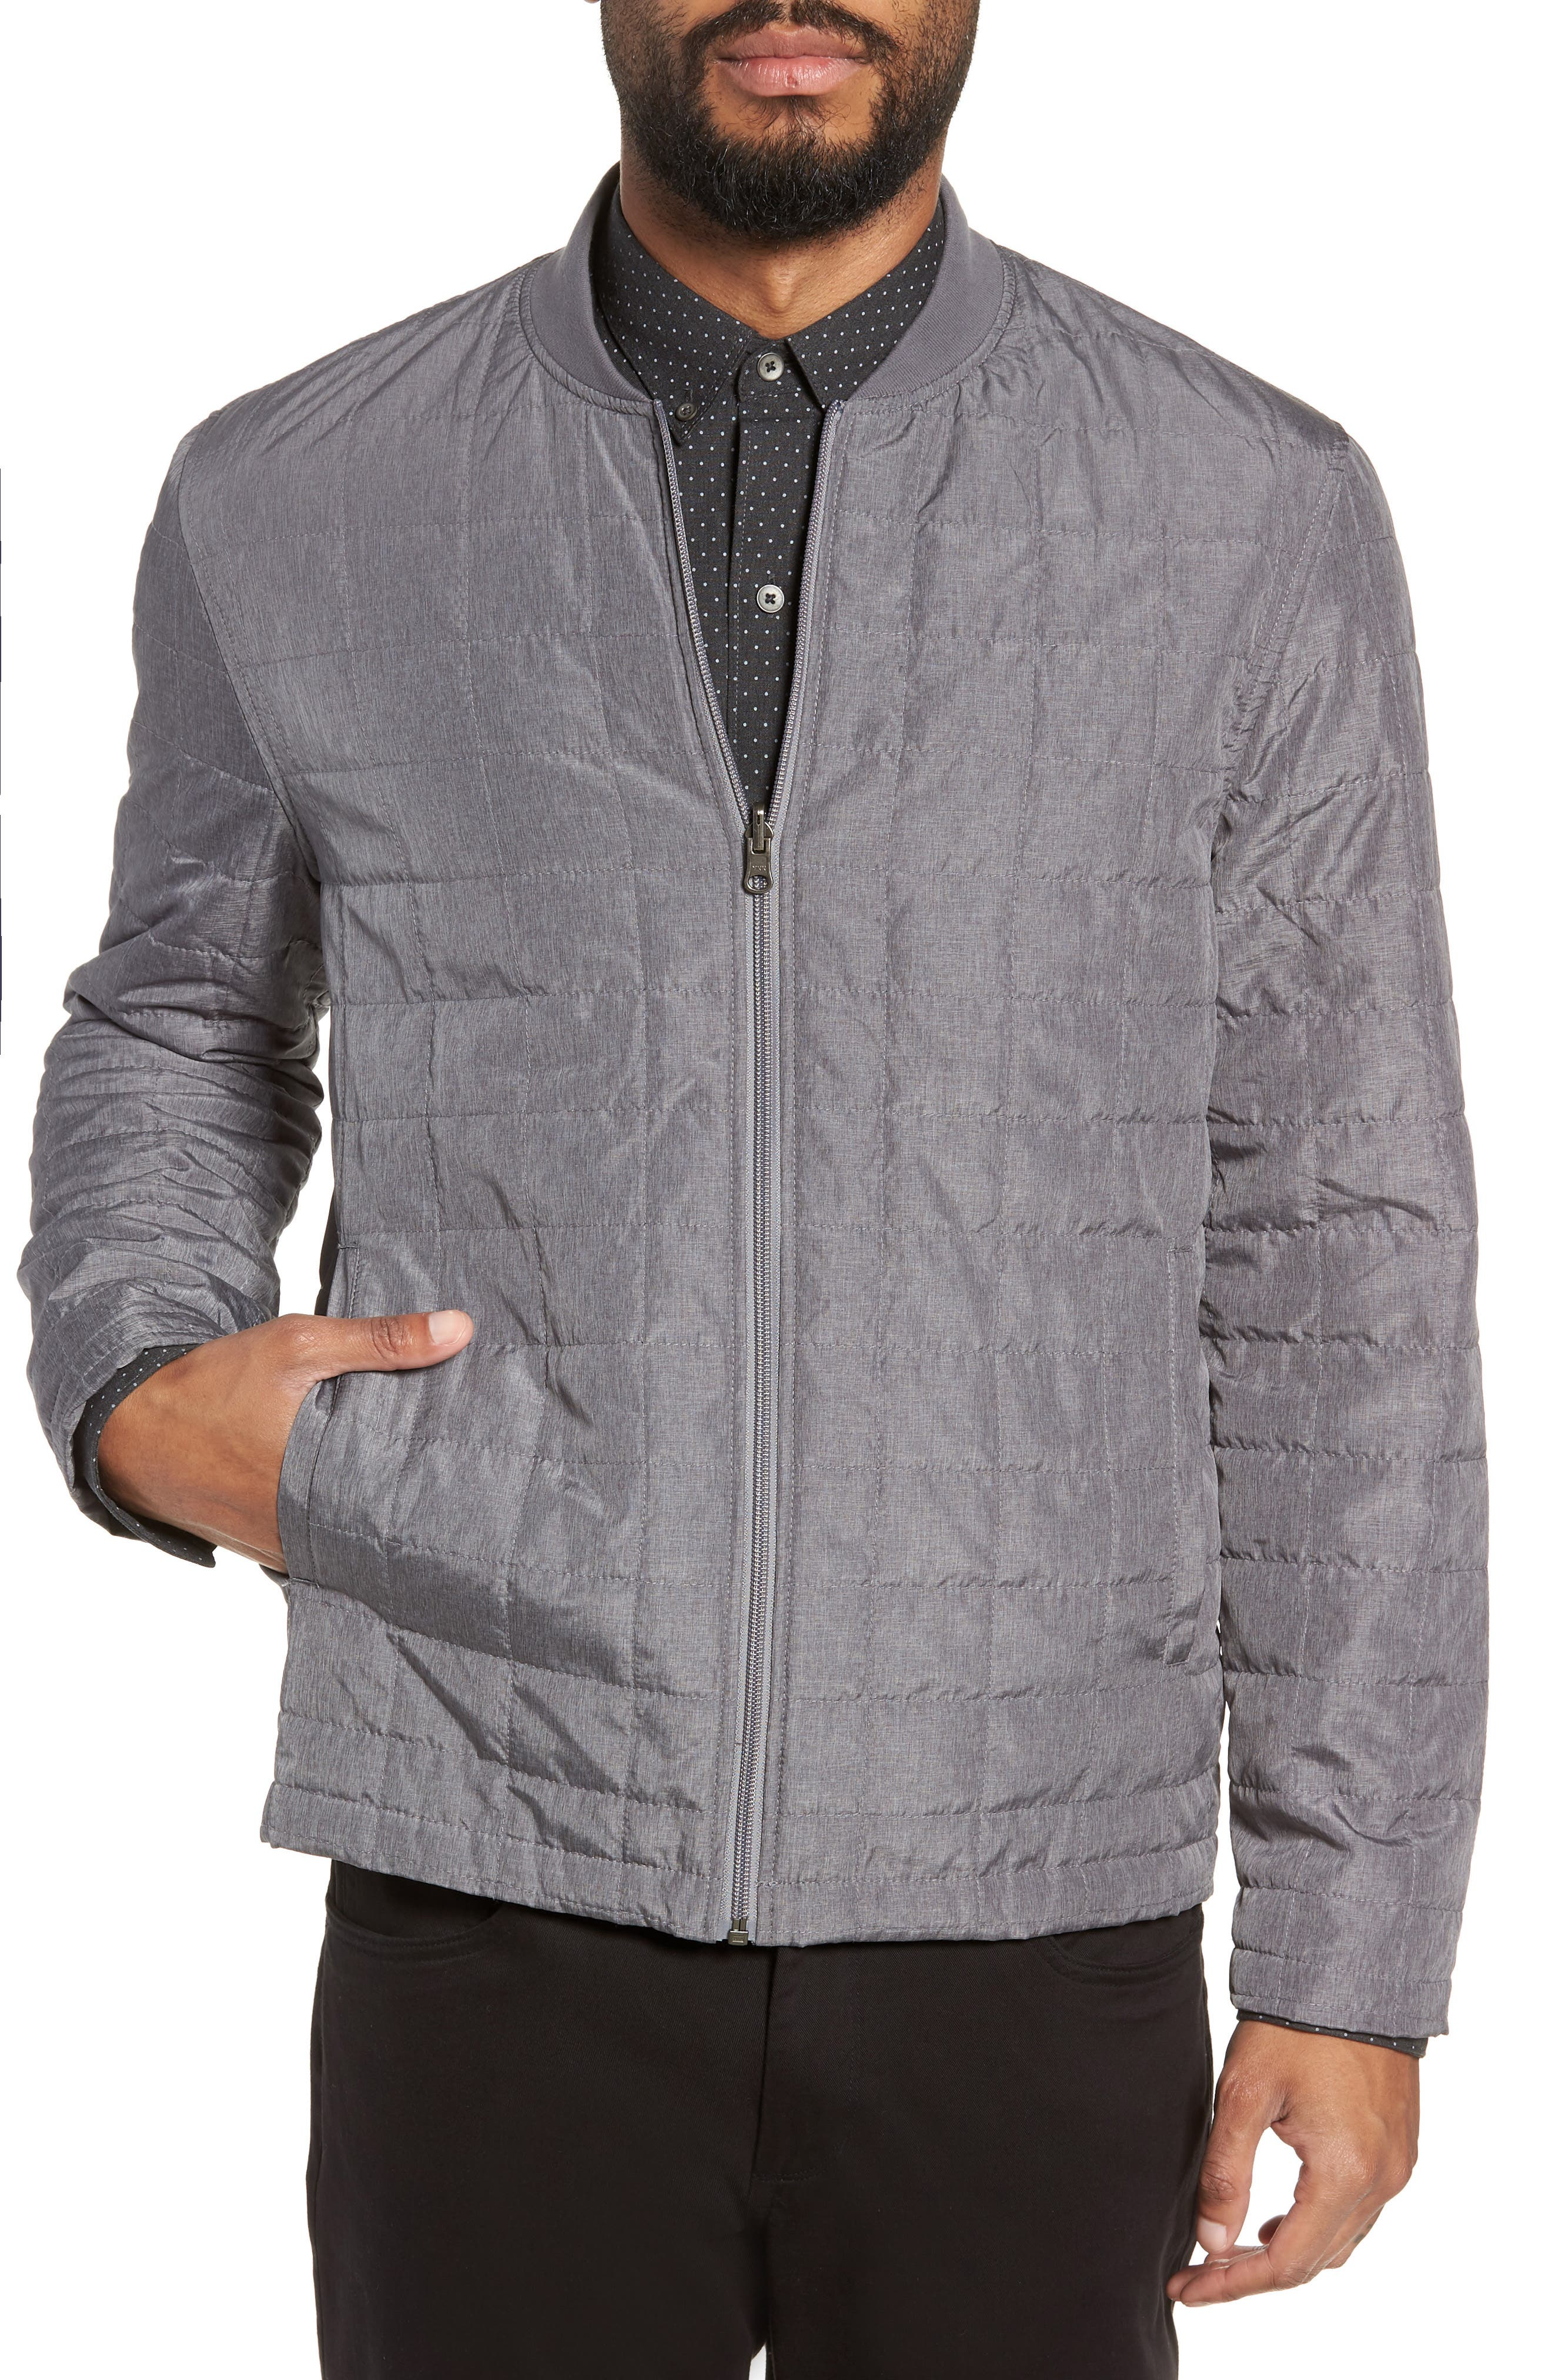 Kilo 3-in-1 Peacoat with Removable Quilted Jacket,                             Alternate thumbnail 2, color,                             OLIVE